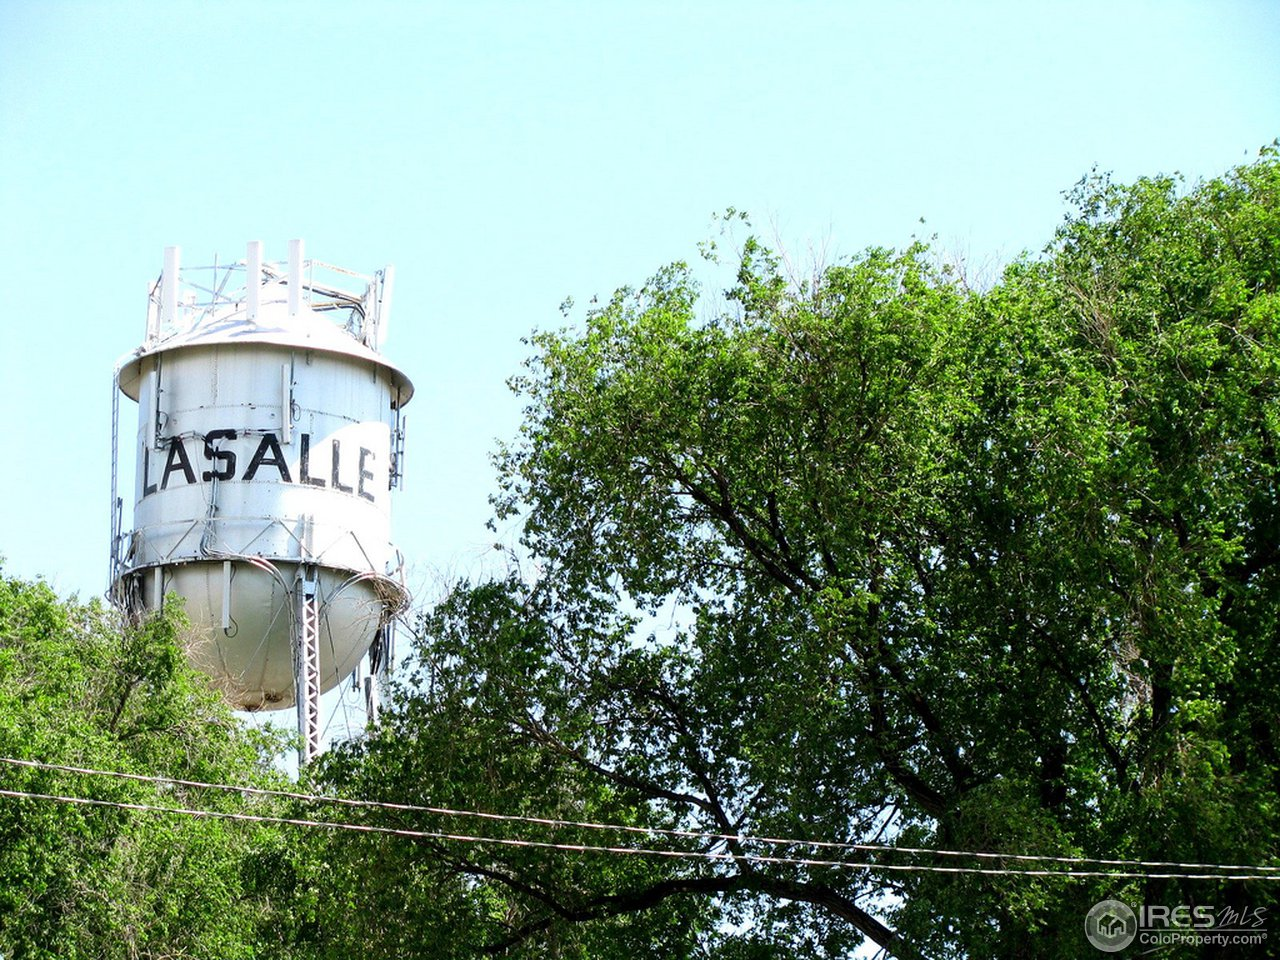 La Salle is iconic small town USA